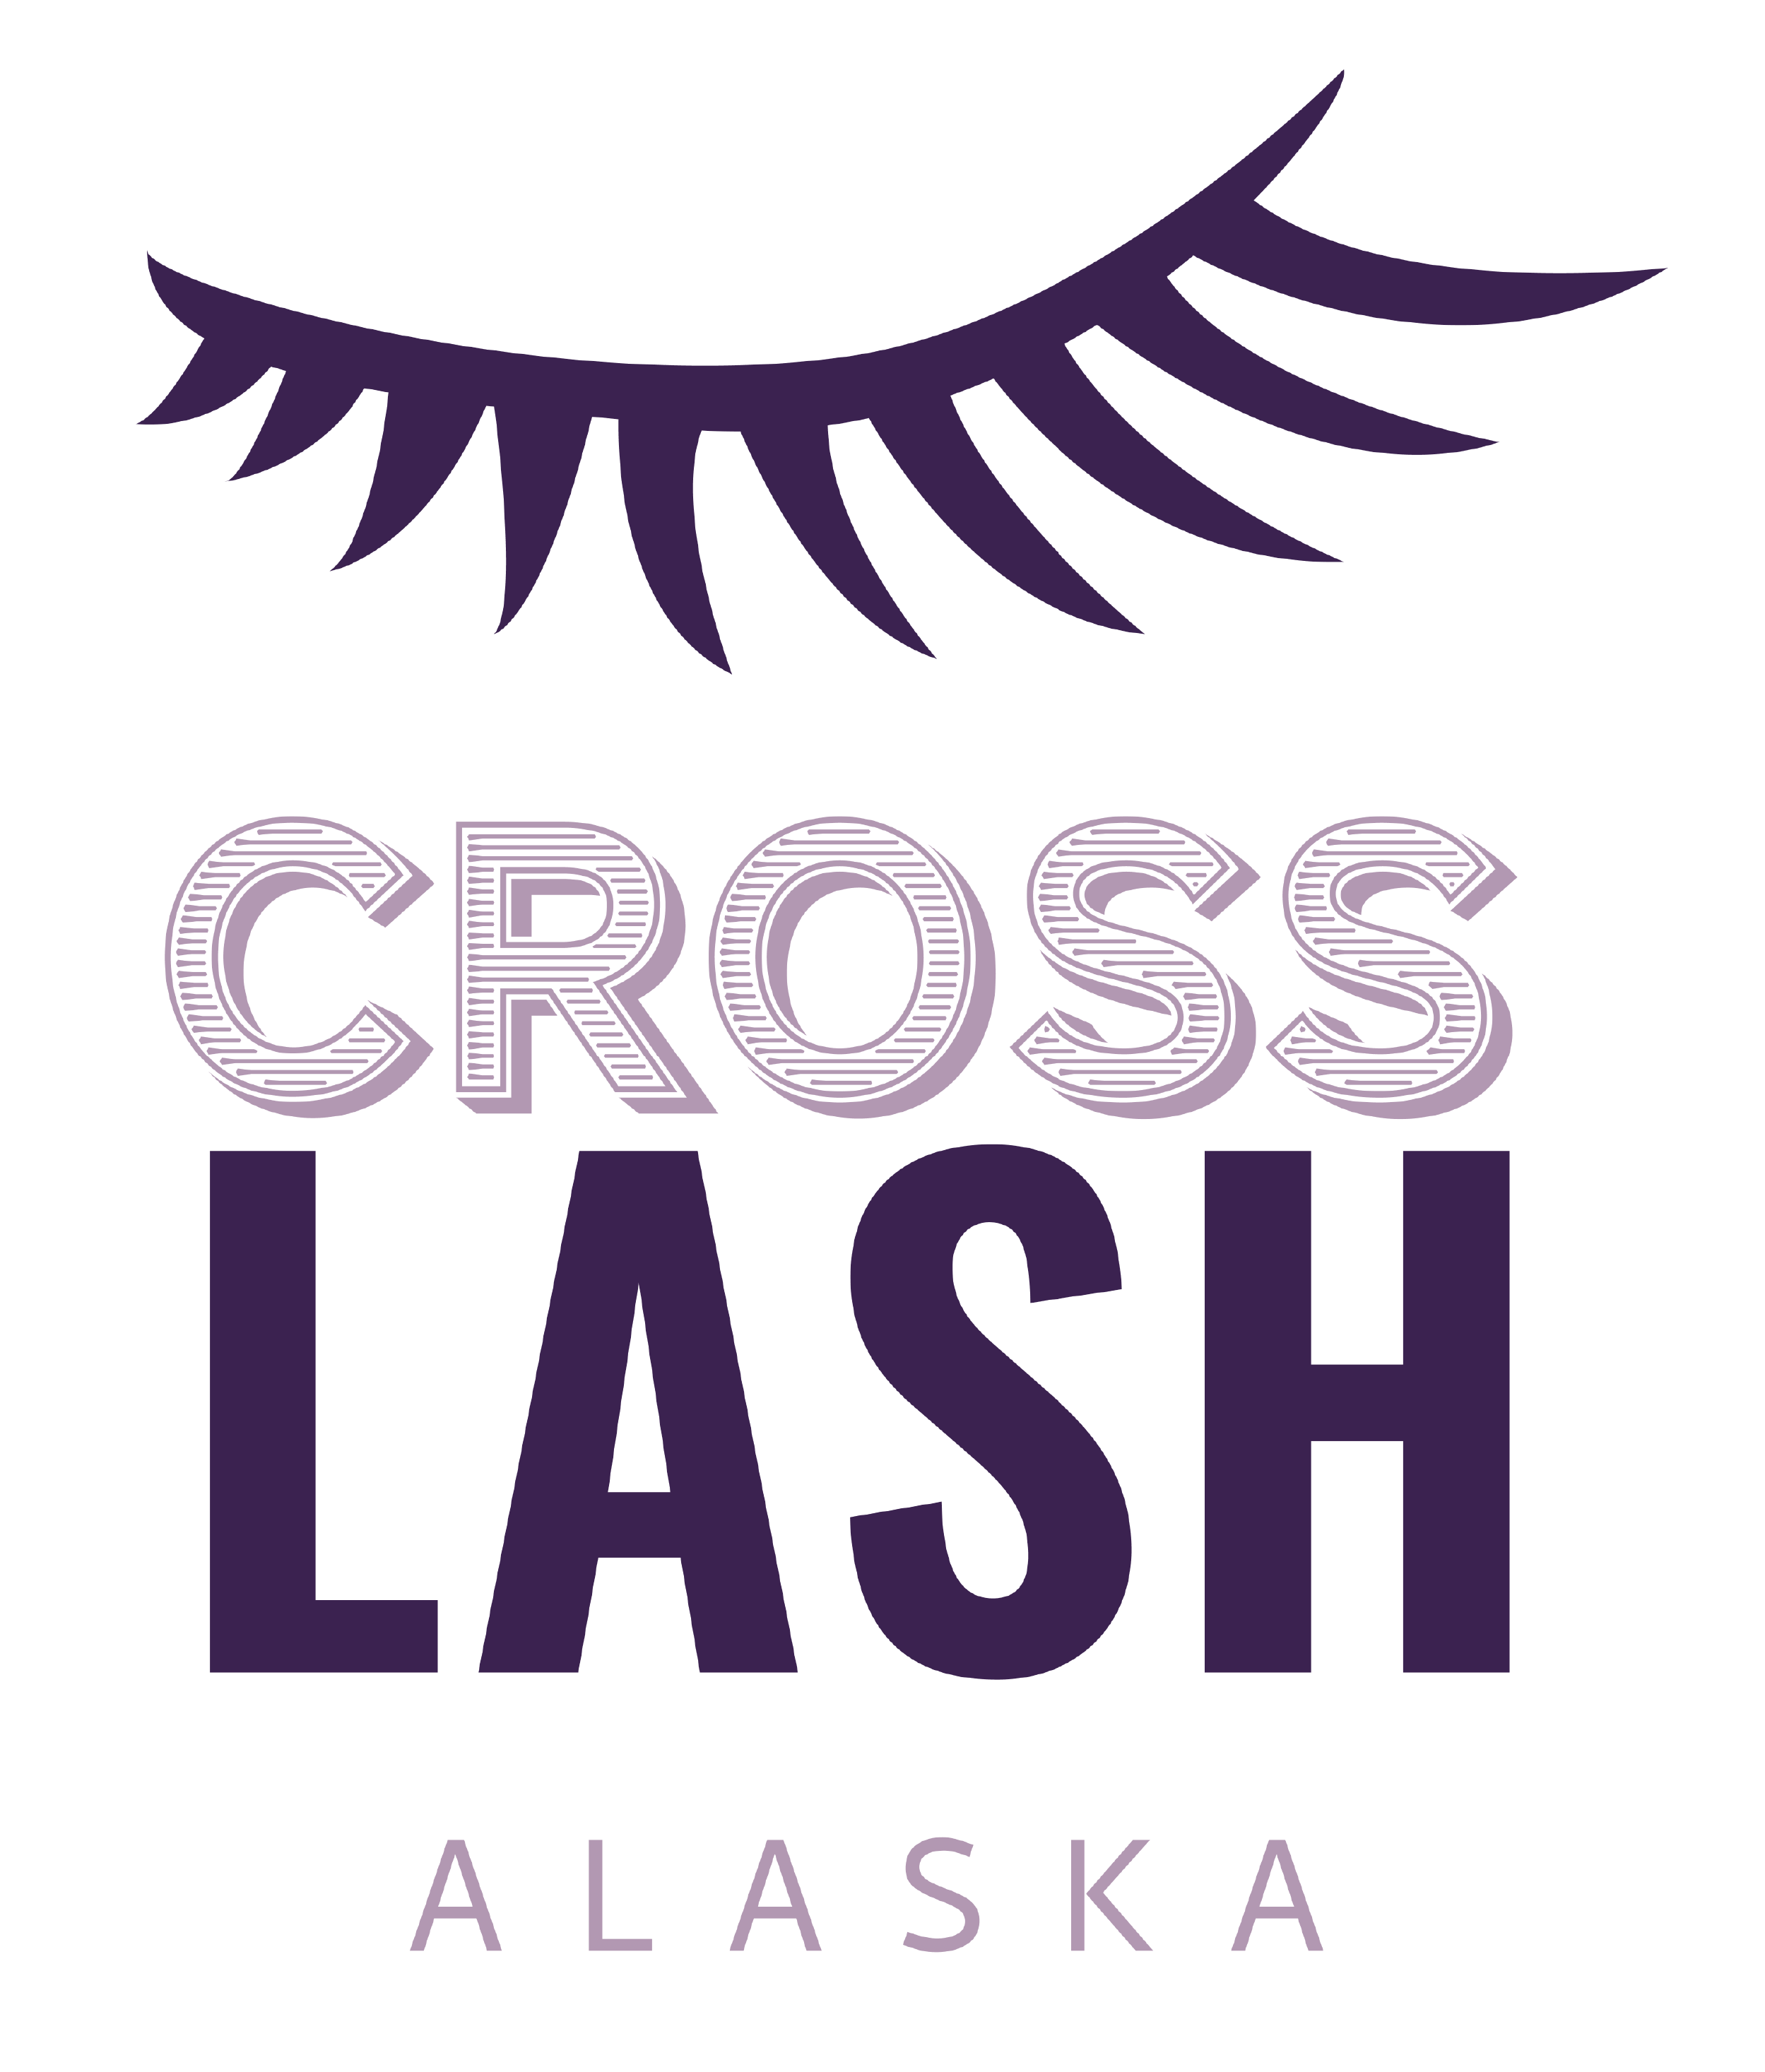 Cross Lash